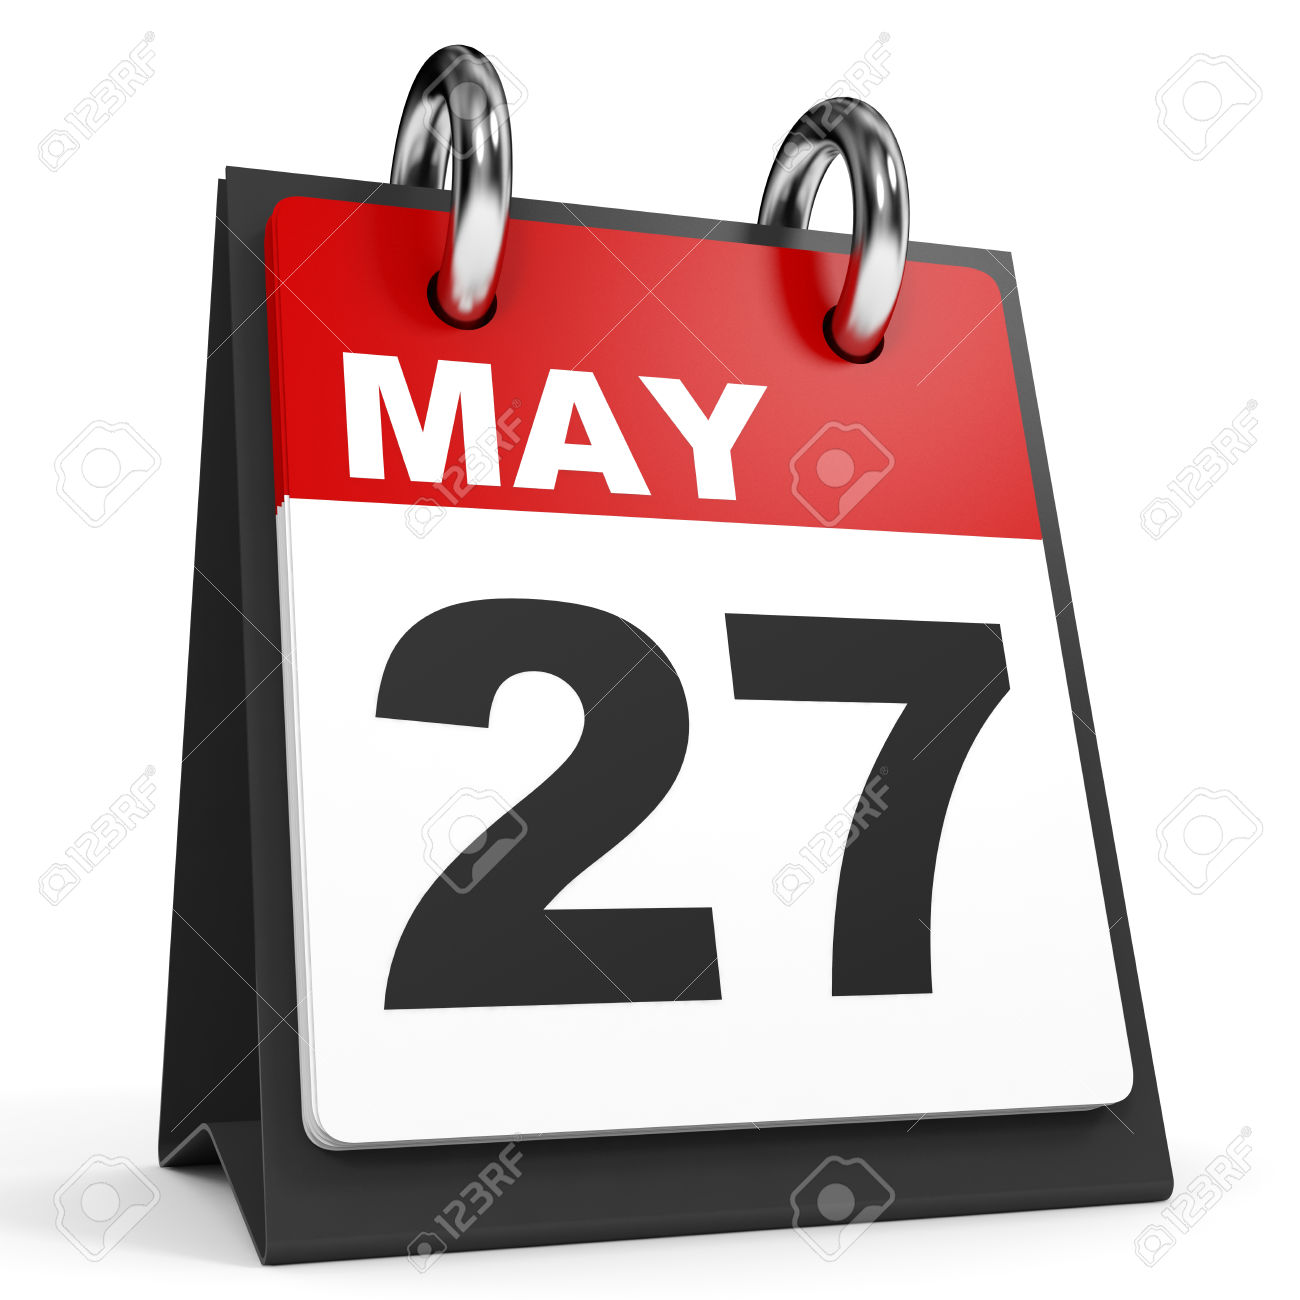 May 27. Calendar On White Background. 3D Illustration. Stock Photo ... banner black and white library